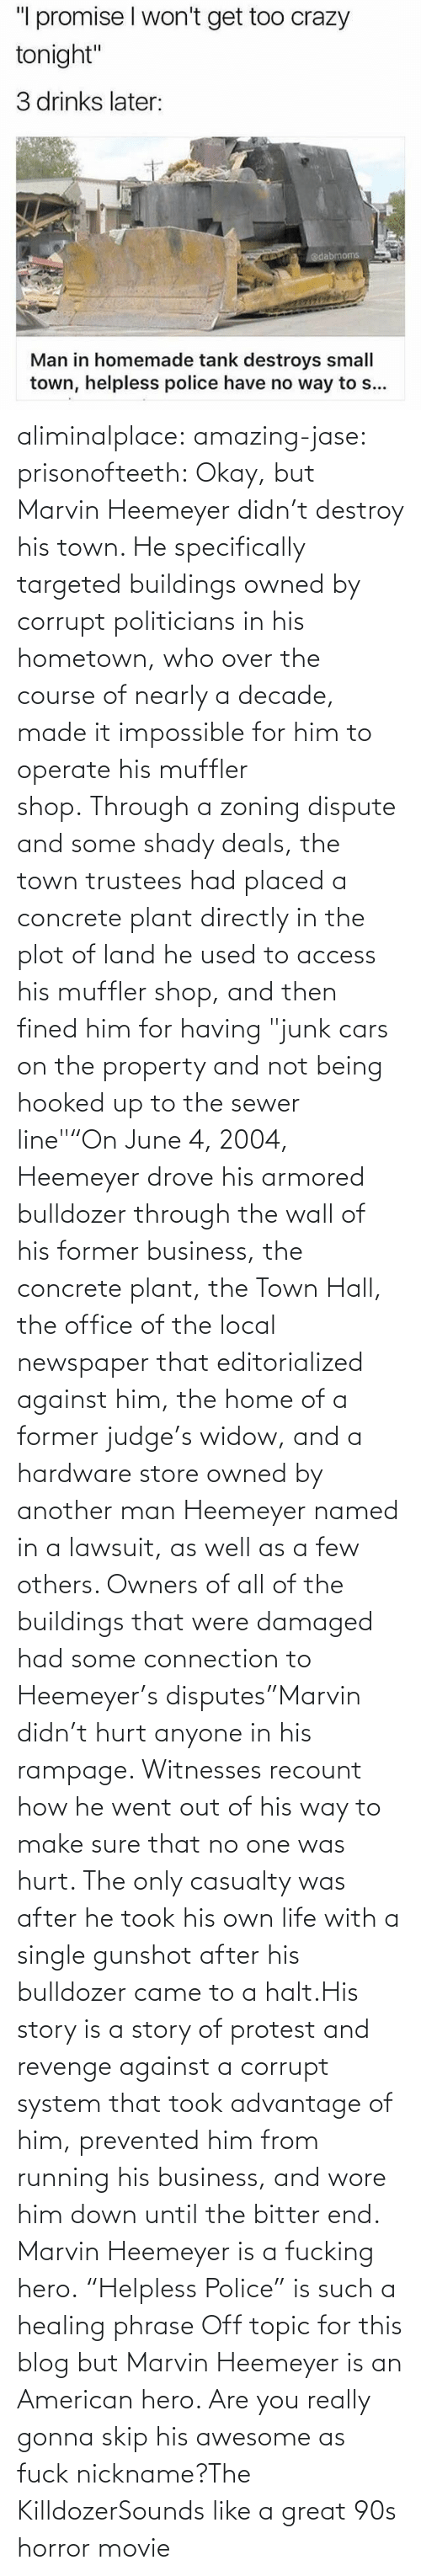 "Okay: aliminalplace: amazing-jase:  prisonofteeth: Okay, but Marvin Heemeyer didn't destroy his town. He specifically targeted buildings owned by corrupt politicians in his hometown, who over the course of nearly a decade, made it impossible for him to operate his muffler shop. Through a zoning dispute and some shady deals, the town trustees had placed a concrete plant directly in the plot of land he used to access his muffler shop, and then fined him for having ""junk cars on the property and not being hooked up to the sewer line""""On June 4, 2004, Heemeyer drove his armored bulldozer through the wall of his former business, the concrete plant, the Town Hall, the office of the local newspaper that editorialized against him, the home of a former judge's widow, and a hardware store owned by another man Heemeyer named in a lawsuit, as well as a few others. Owners of all of the buildings that were damaged had some connection to Heemeyer's disputes""Marvin didn't hurt anyone in his rampage. Witnesses recount how he went out of his way to make sure that no one was hurt. The only casualty was after he took his own life with a single gunshot after his bulldozer came to a halt.His story is a story of protest and revenge against a corrupt system that took advantage of him, prevented him from running his business, and wore him down until the bitter end. Marvin Heemeyer is a fucking hero. ""Helpless Police"" is such a healing phrase    Off topic for this blog but Marvin Heemeyer is an American hero.     Are you really gonna skip his awesome as fuck nickname?The KilldozerSounds like a great 90s horror movie"